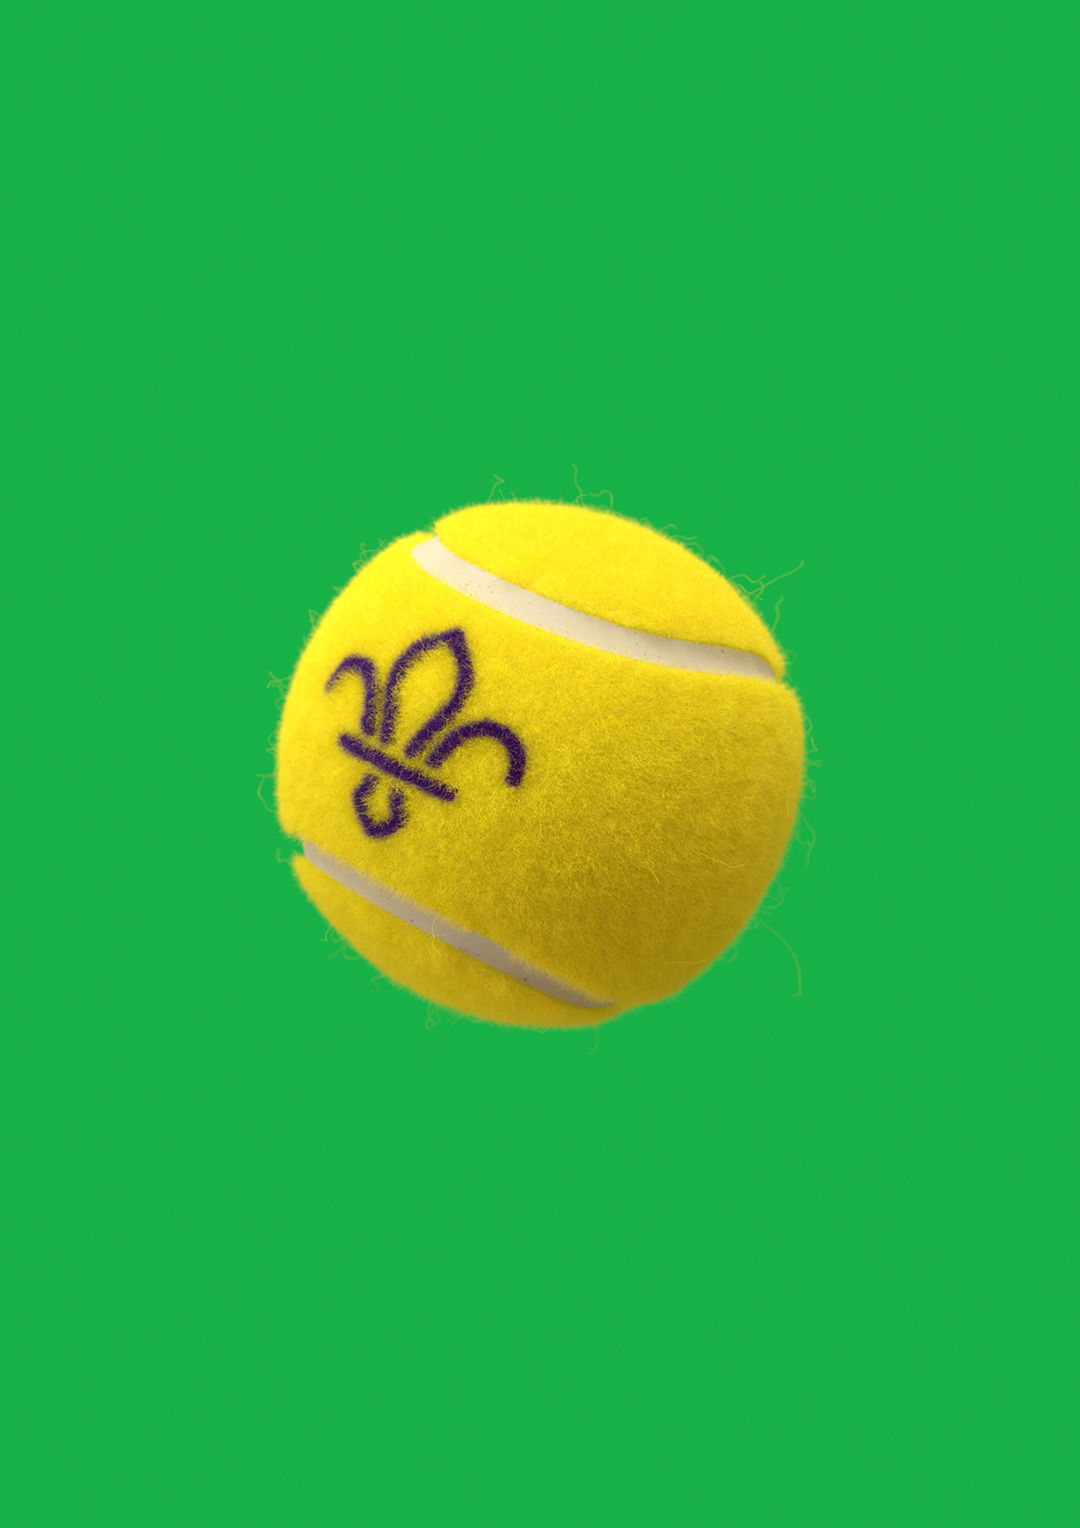 Scouts - Better Futures---Young-Illustration-&-Animation-Studio-Manchester-2D,3D, tennis ball, wimbeldon, logo, texture -  3d modelling - ANIMATION.jpg